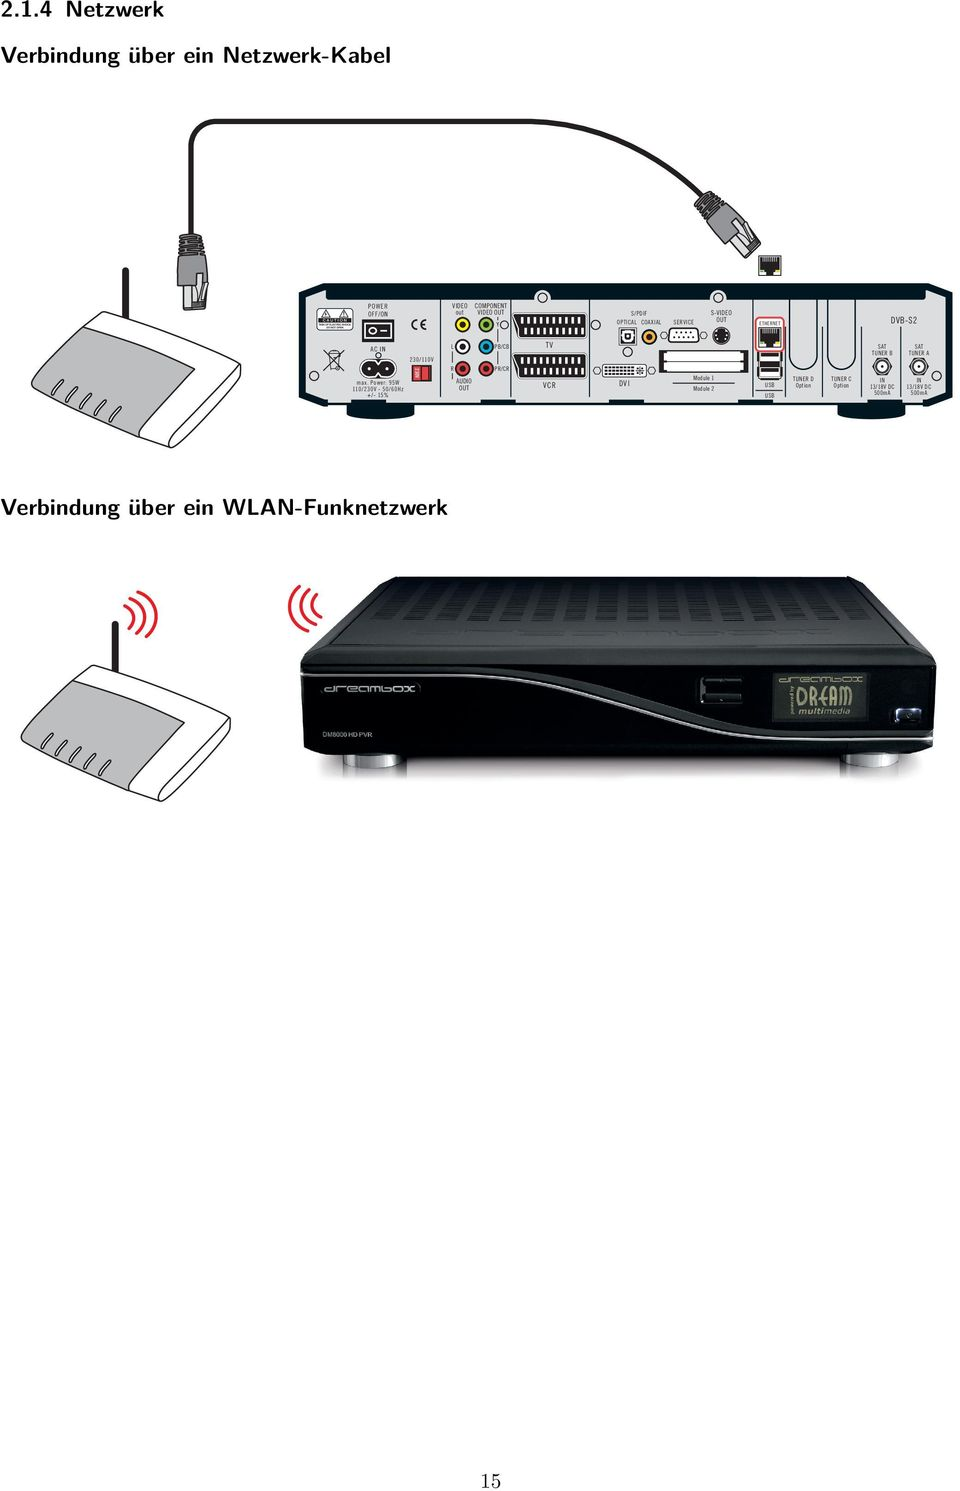 max. Power: 95W 110/230V - 50/60Hz +/- 15% 230V R AUDIO OUT PR/CR VCR DVI Module 1 Module 2 USB USB